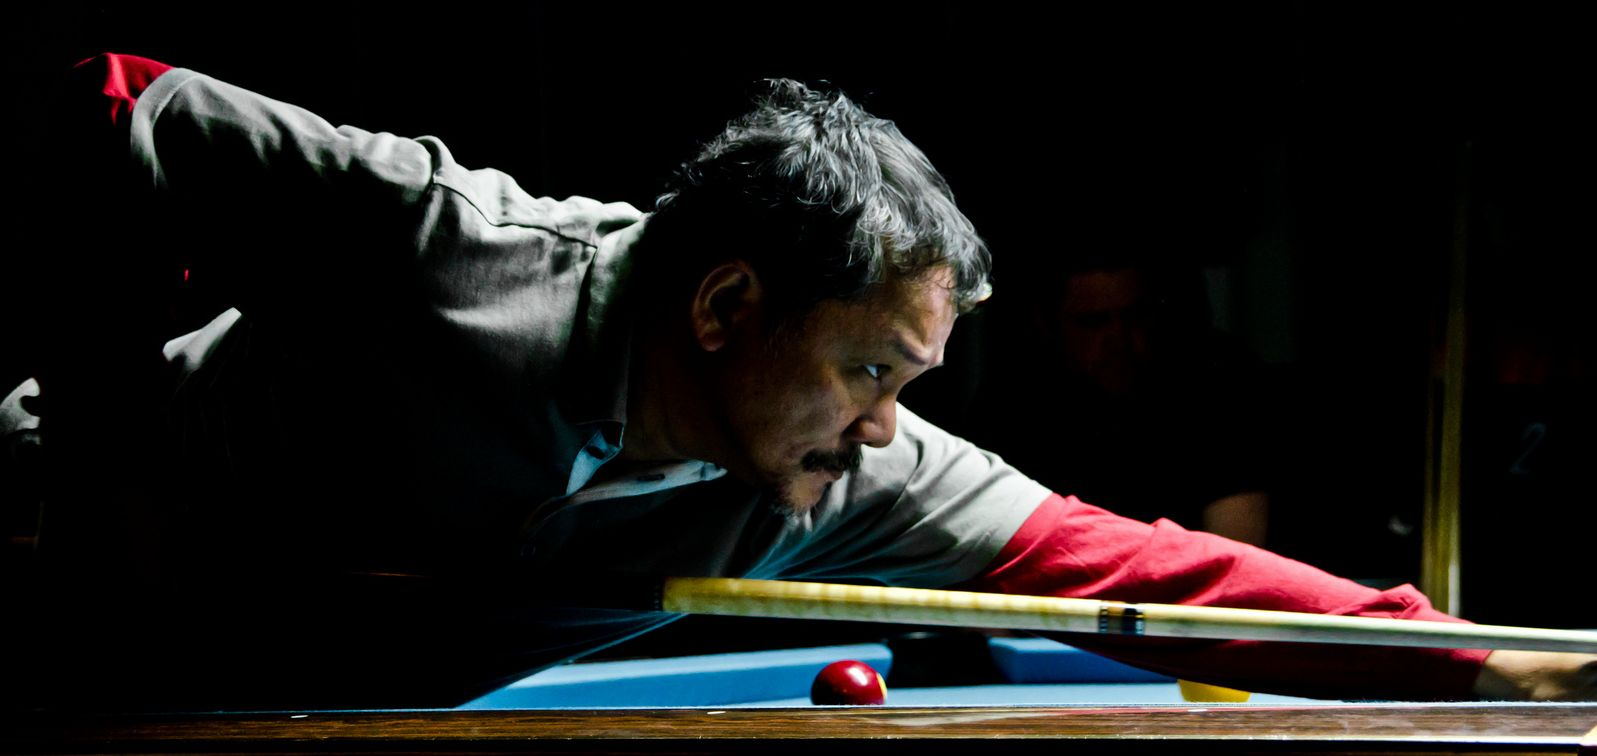 Top 10 billiards videos by Efren Reyes